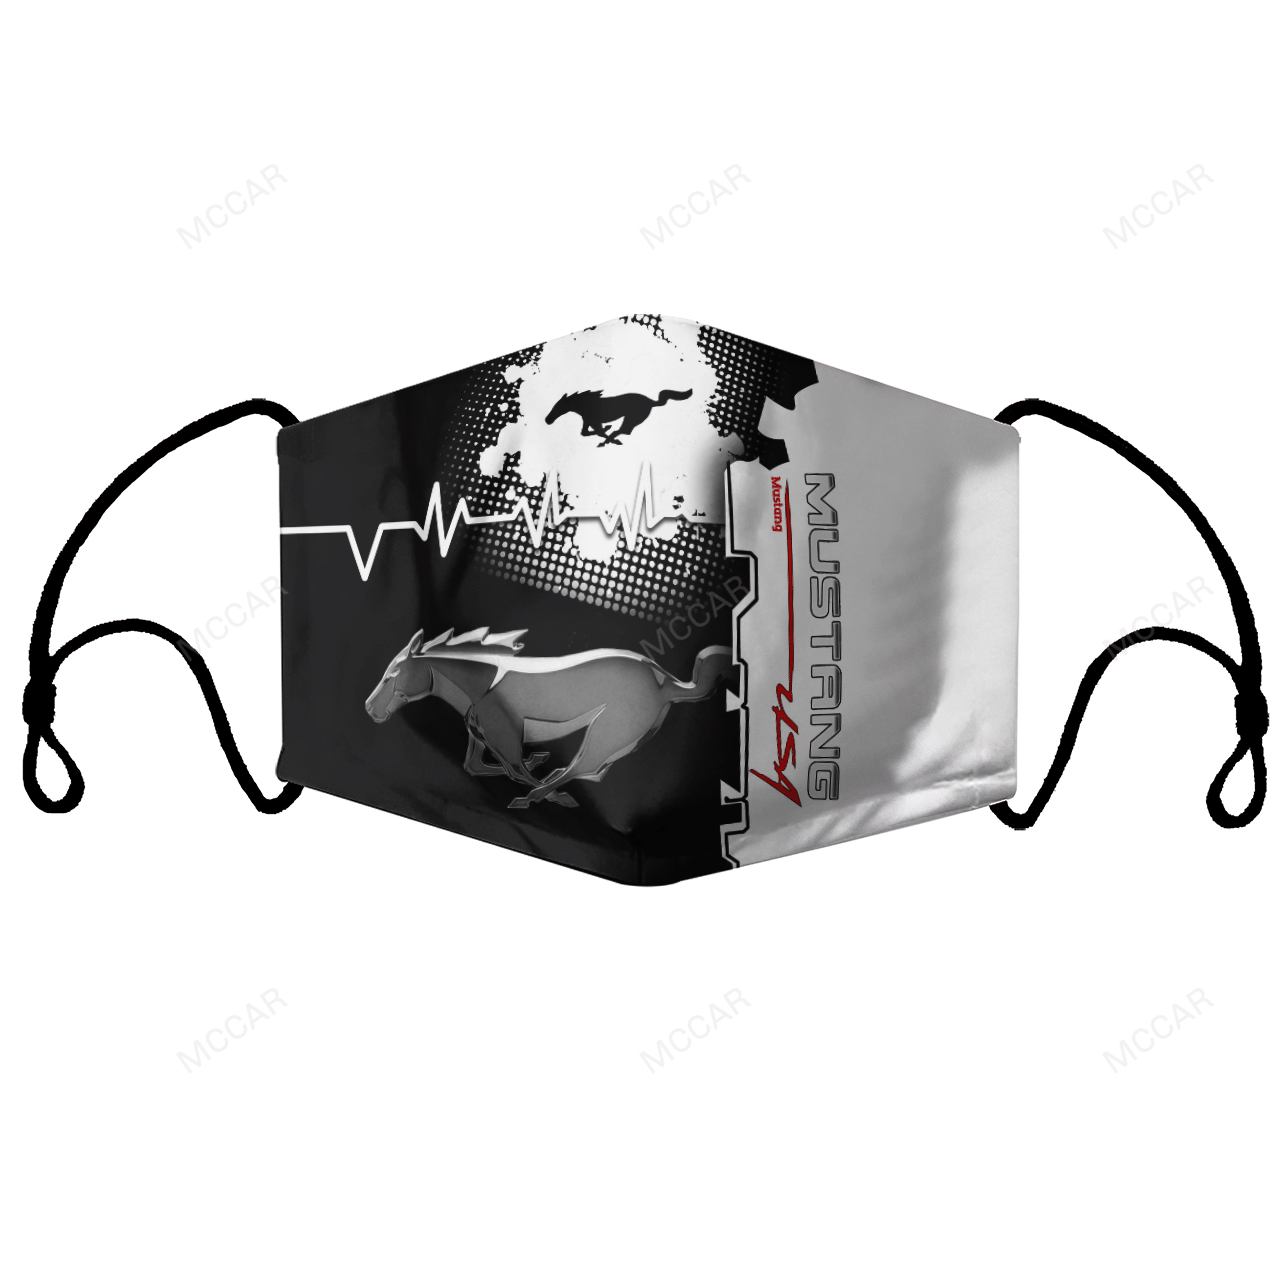 Ford Mustang Fabric Stretch to Fit face mask